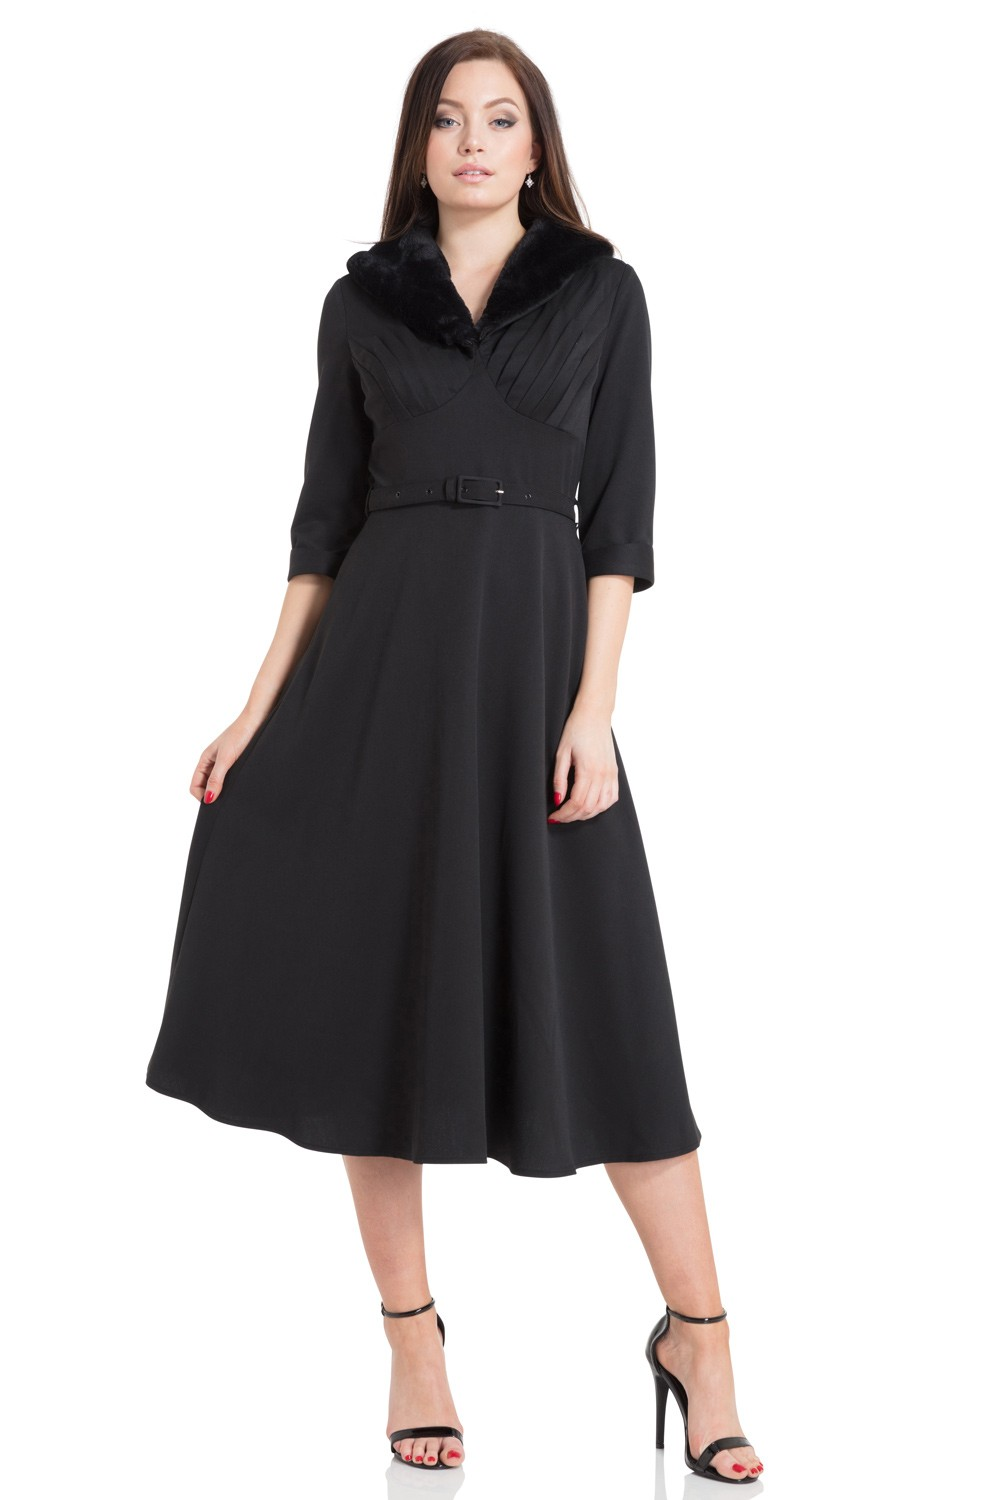 40s Lia Faux Fur Dress In Black